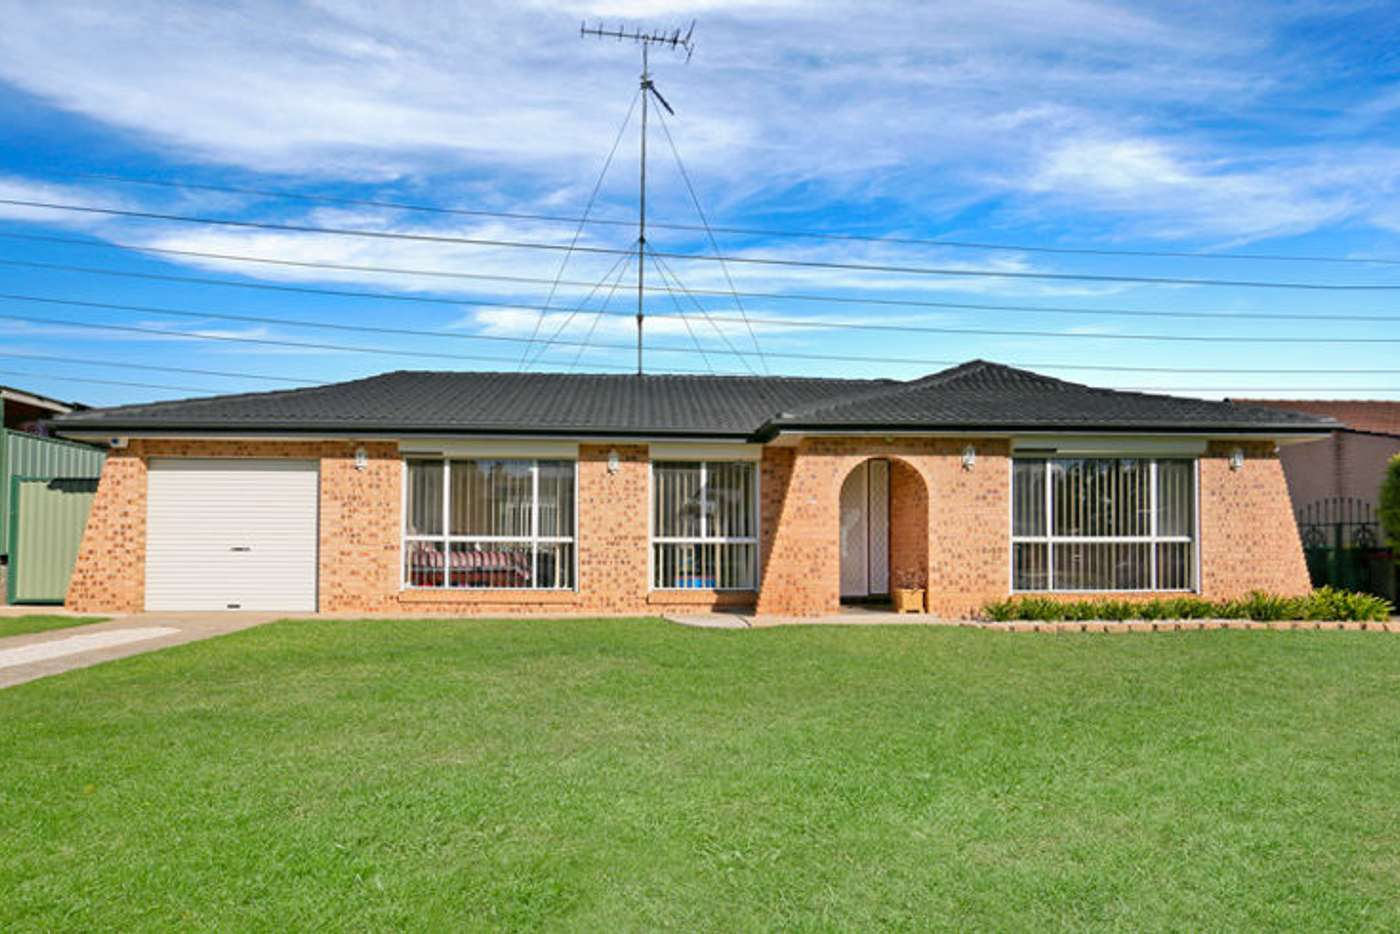 Main view of Homely house listing, 11 Verdi Glen, St Clair NSW 2759